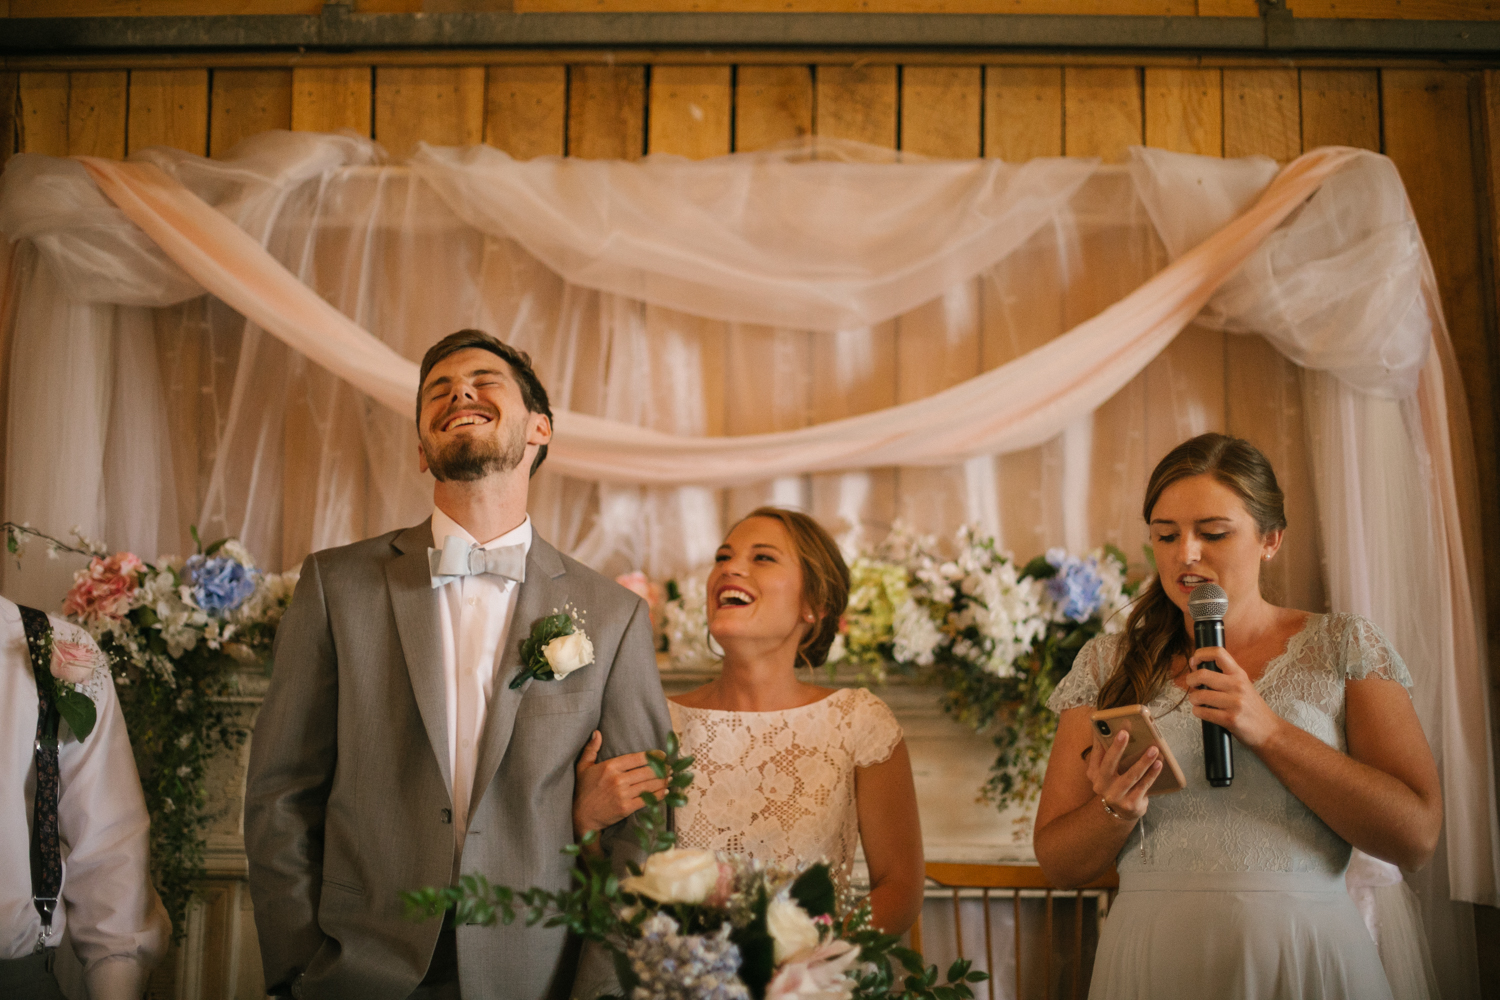 2019.06.01_CraskWedding_Starks-198.jpg